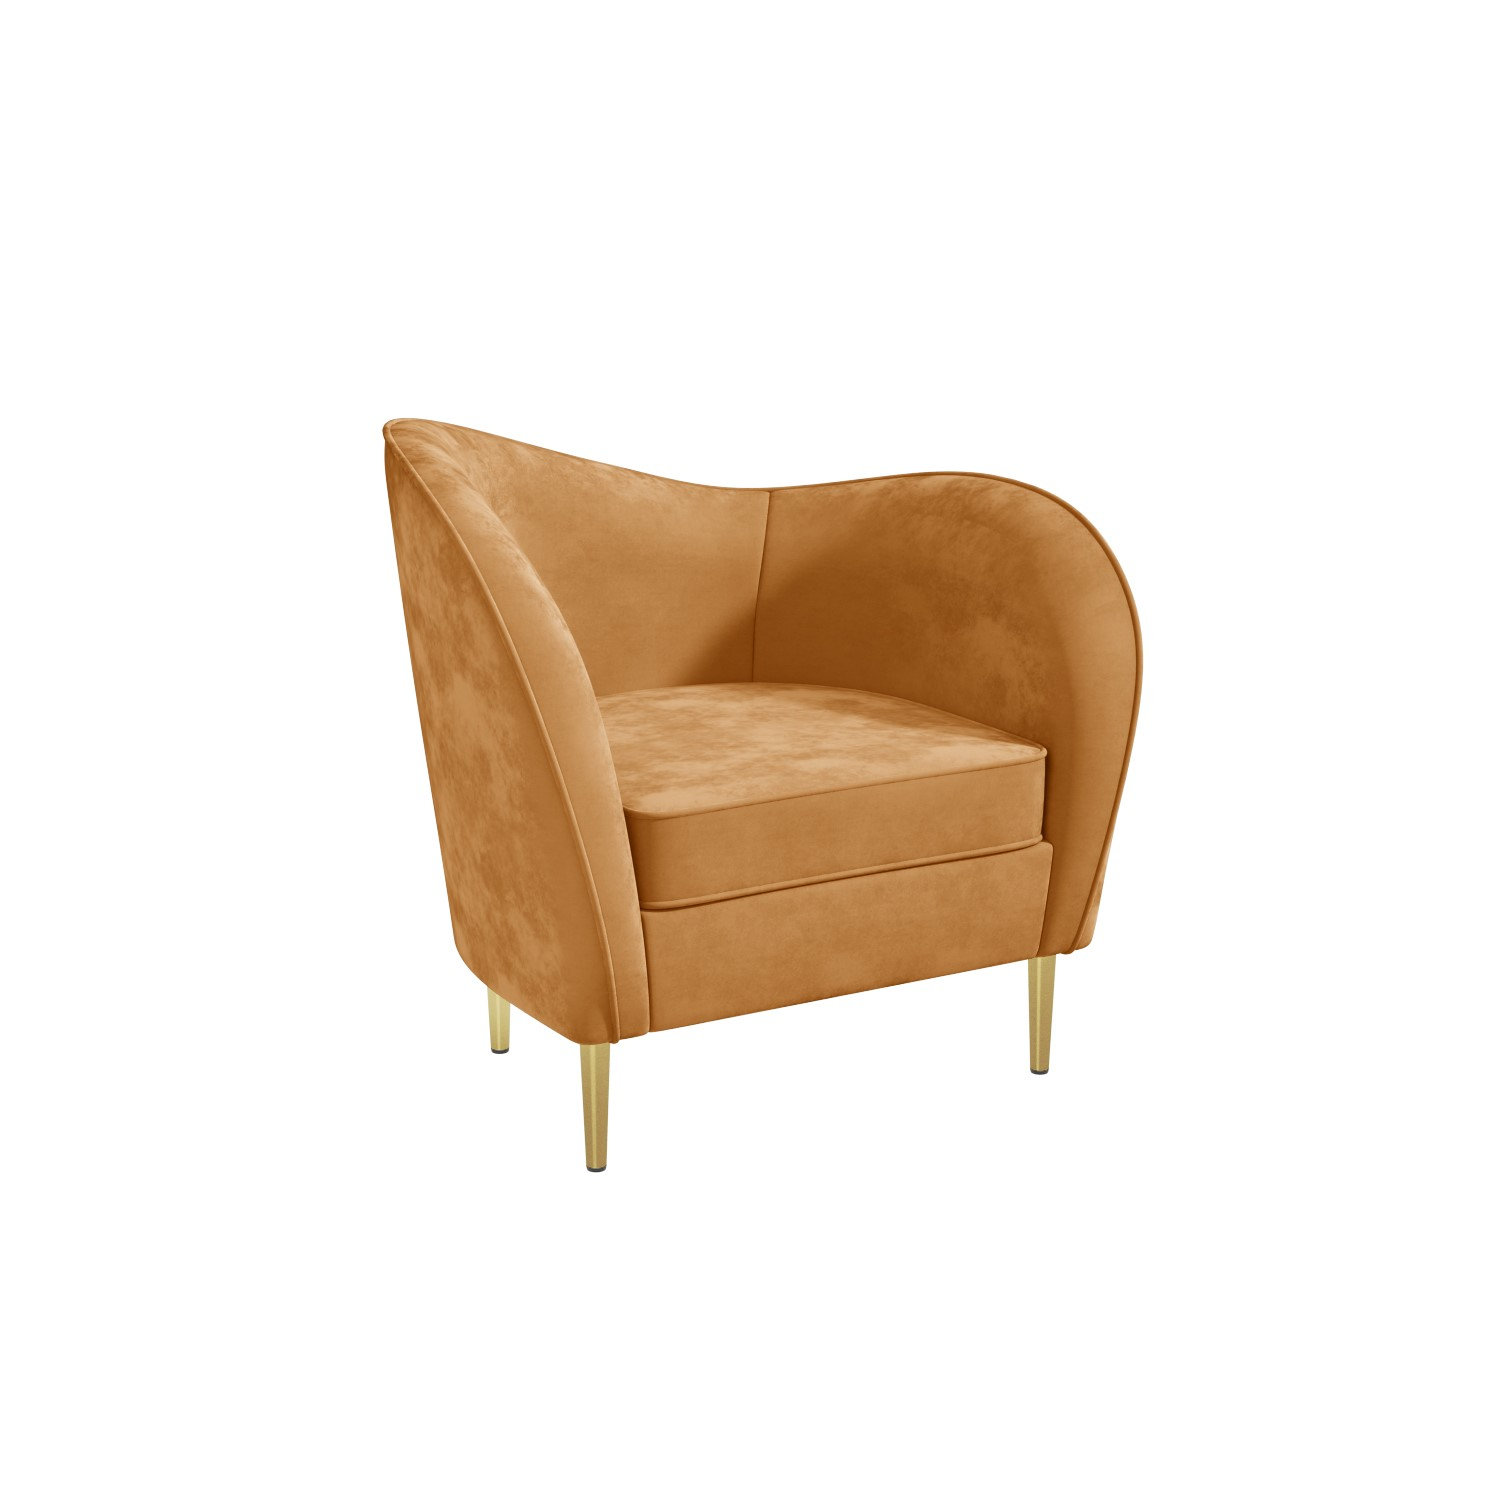 Yellow Velvet Armchair With Scooped Back And Gold Legs Cara Furniture123